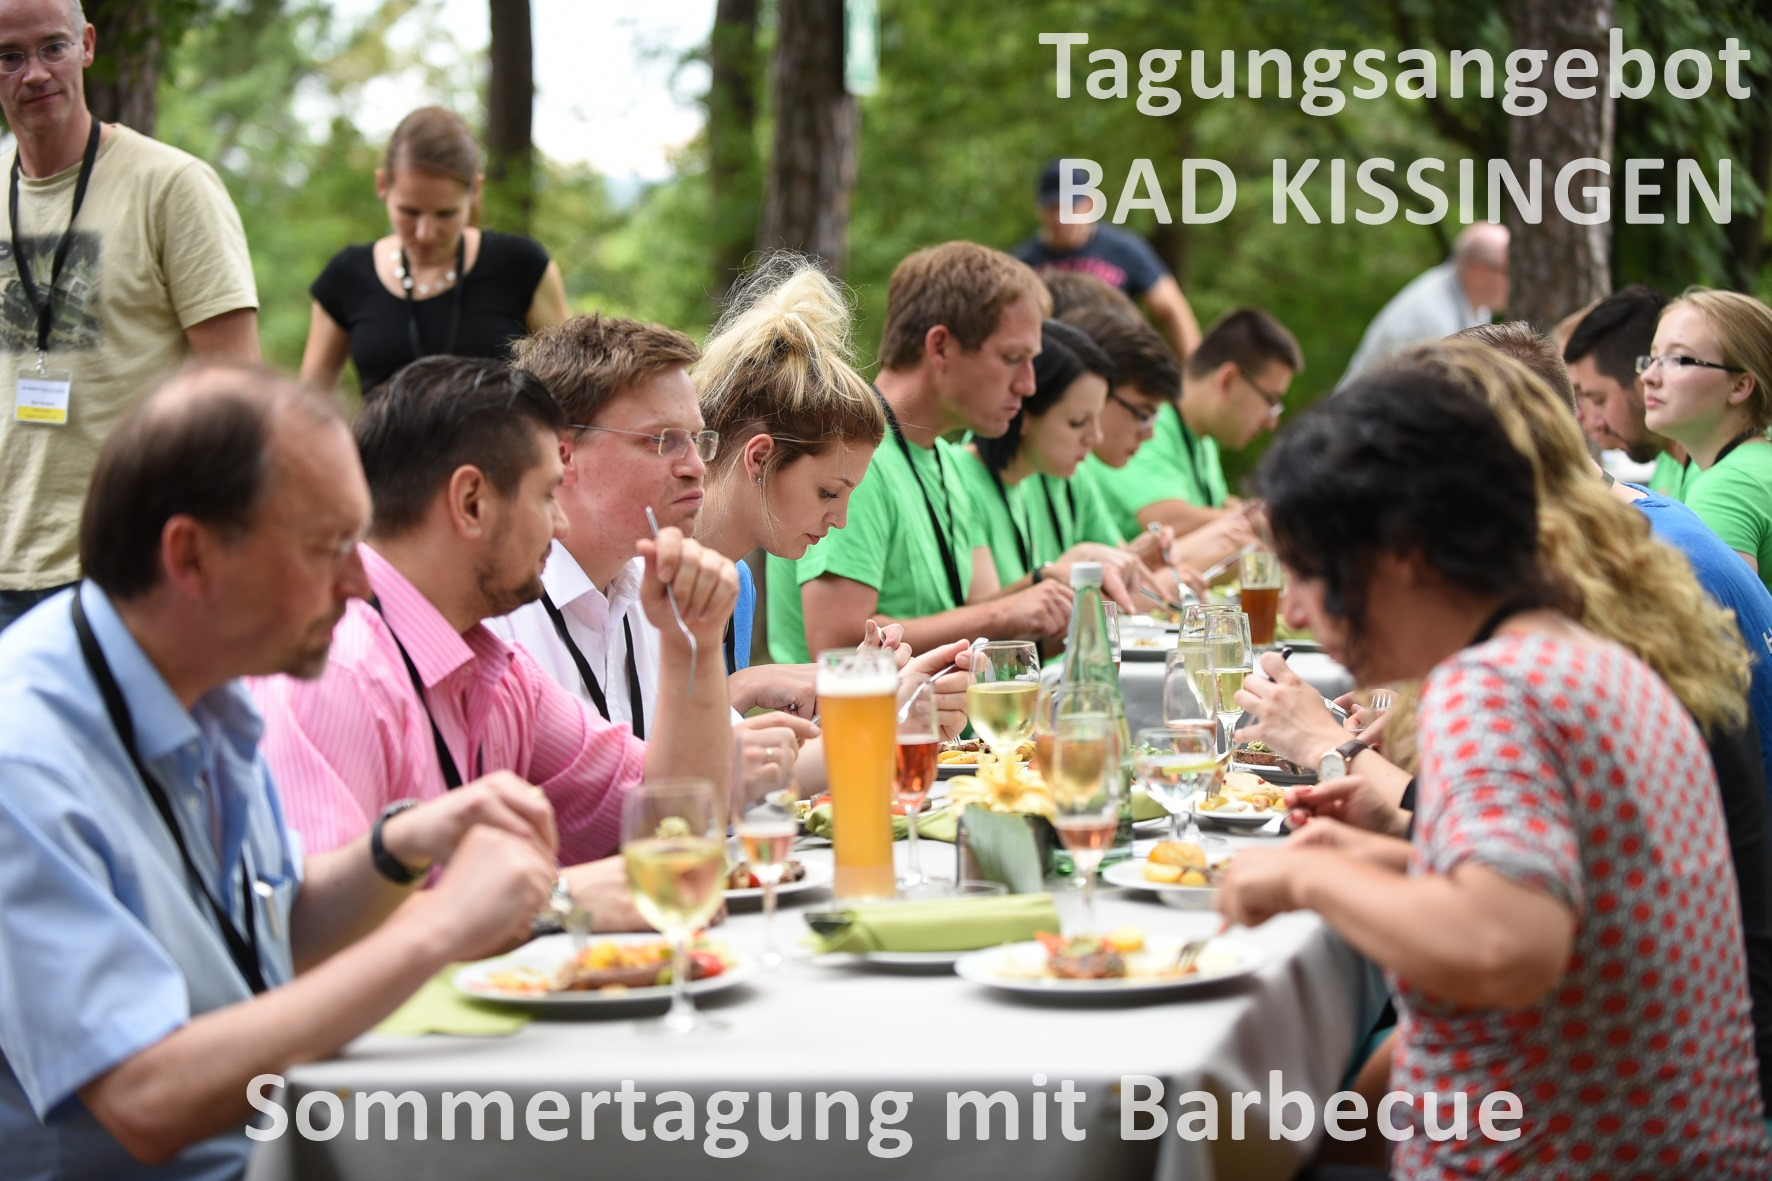 Barbecue bei einer Tagung in Bad Kissingen